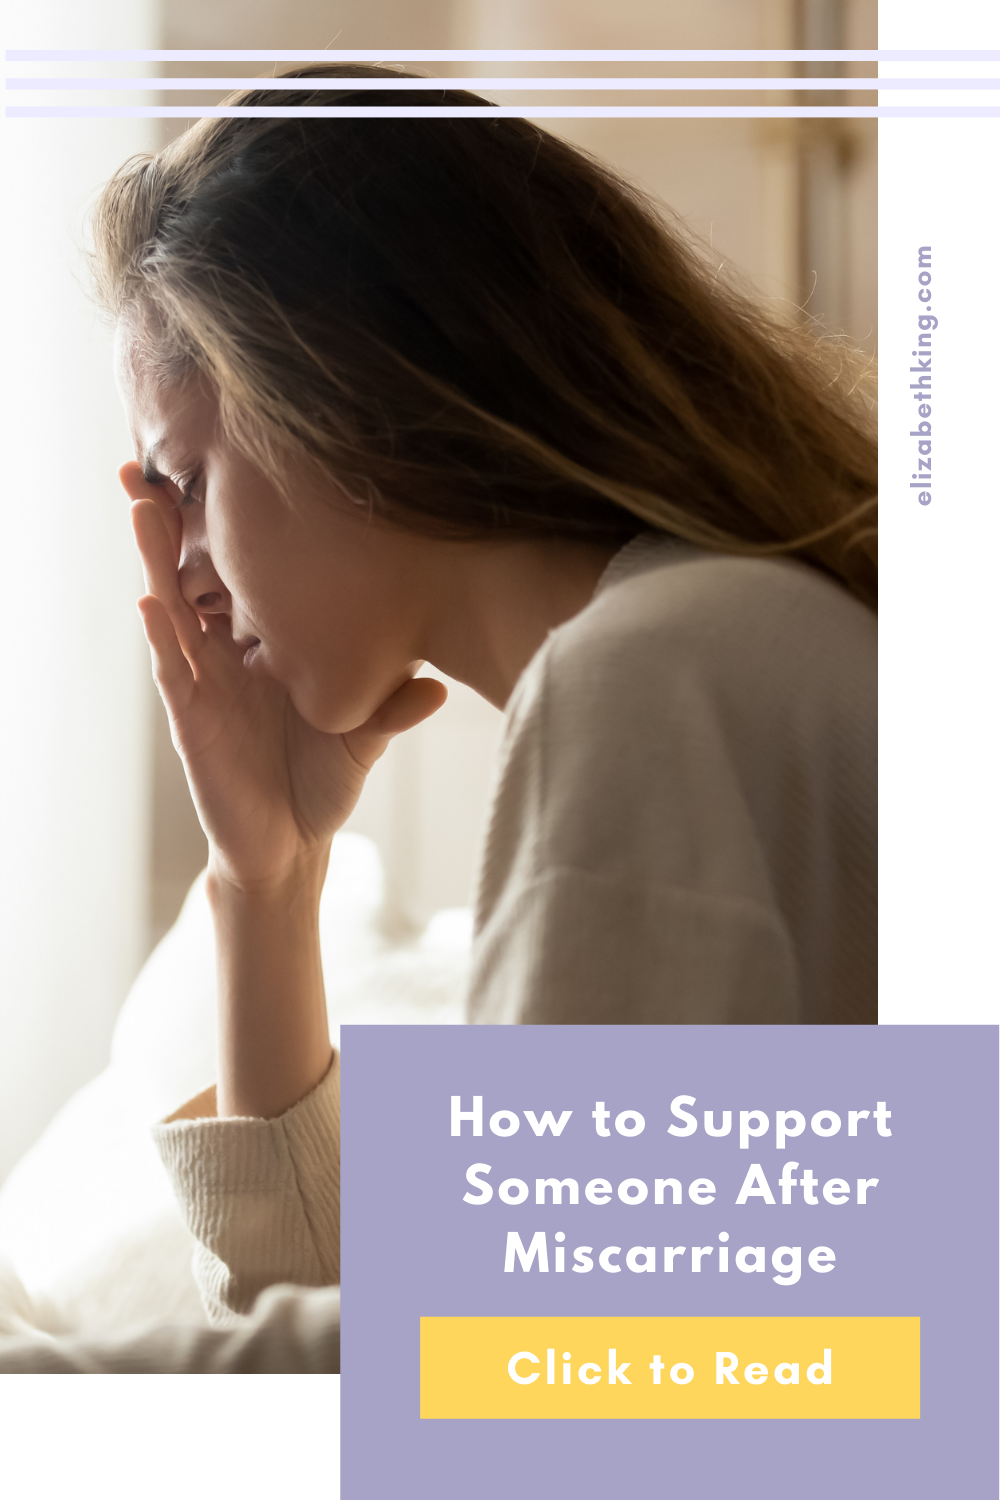 How to Support Someone After Miscarriage   ElizabethKing.com